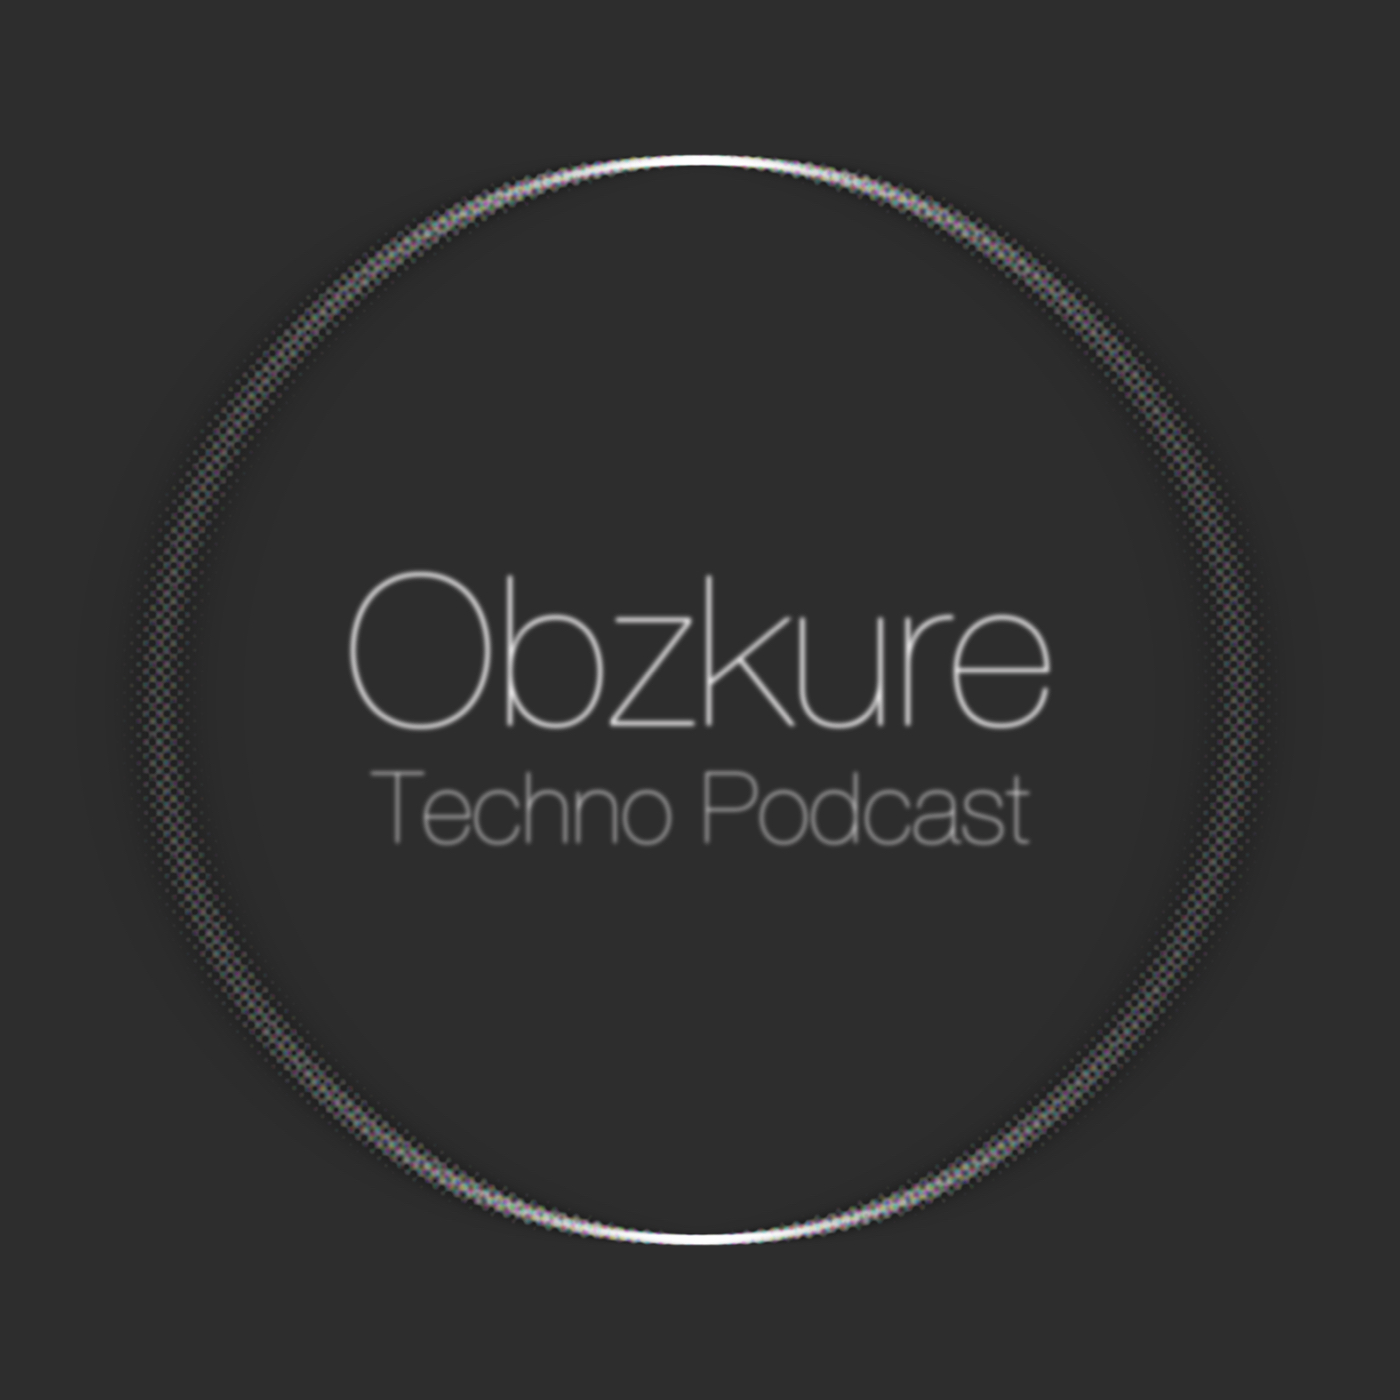 Obzkure Techno Podcast